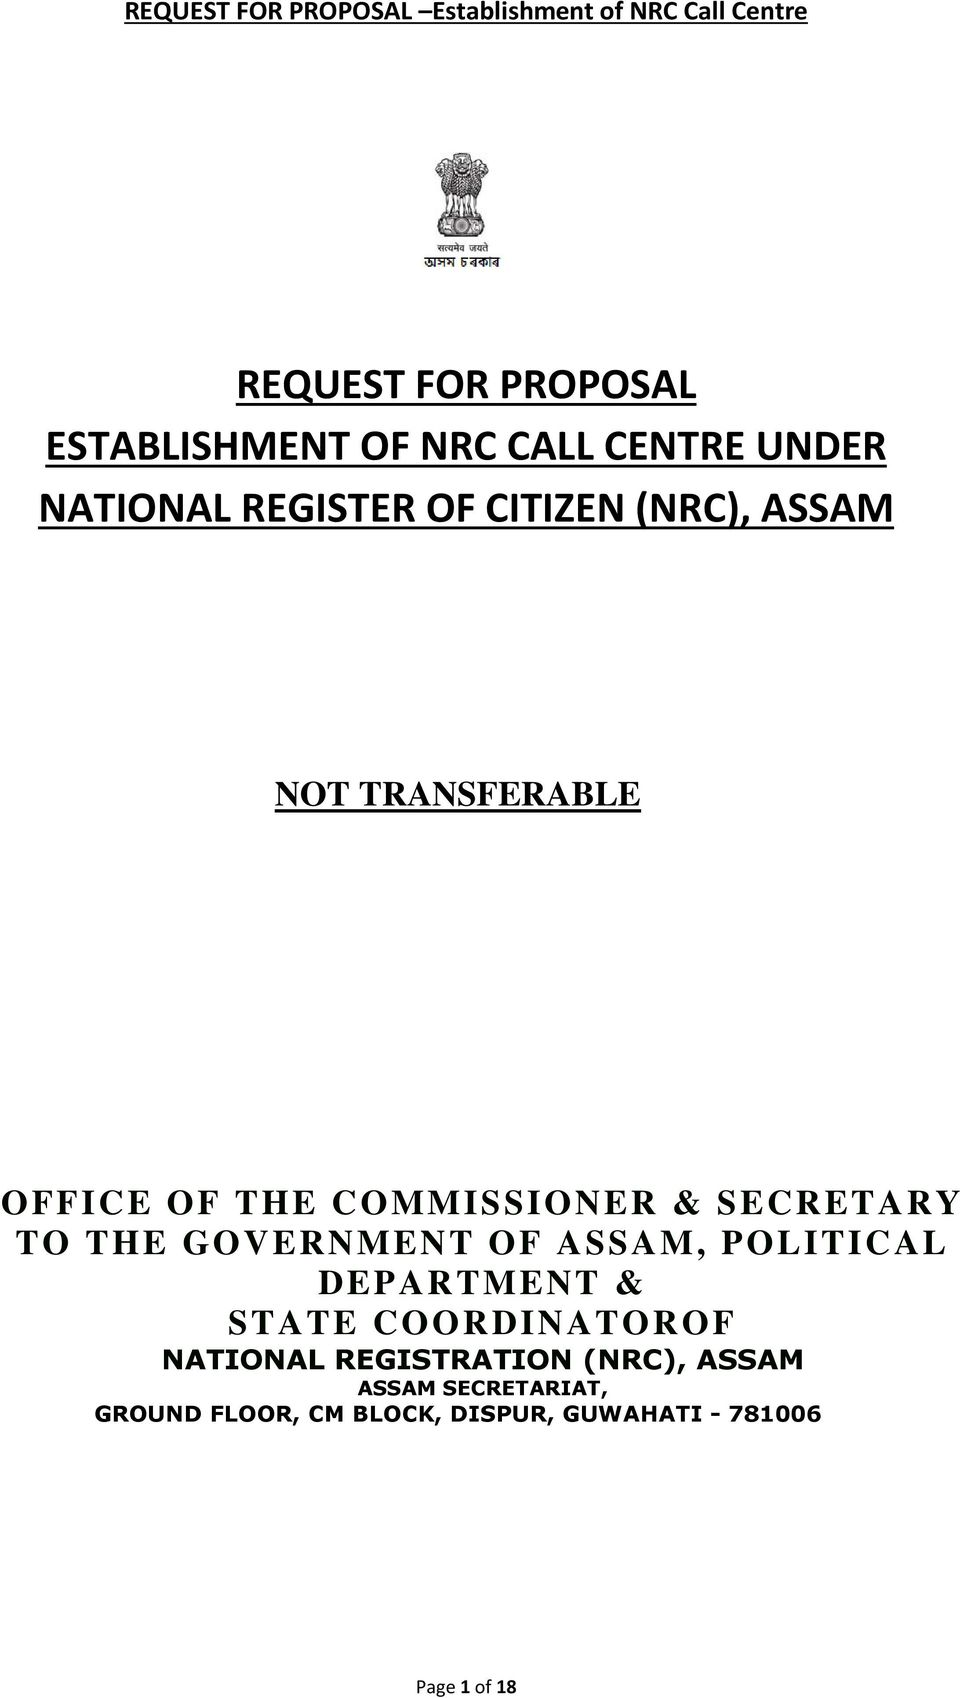 GOVERNMENT OF ASSAM, POLITICAL DEPARTMENT & STATE COORDINATOROF NATIONAL REGISTRATION